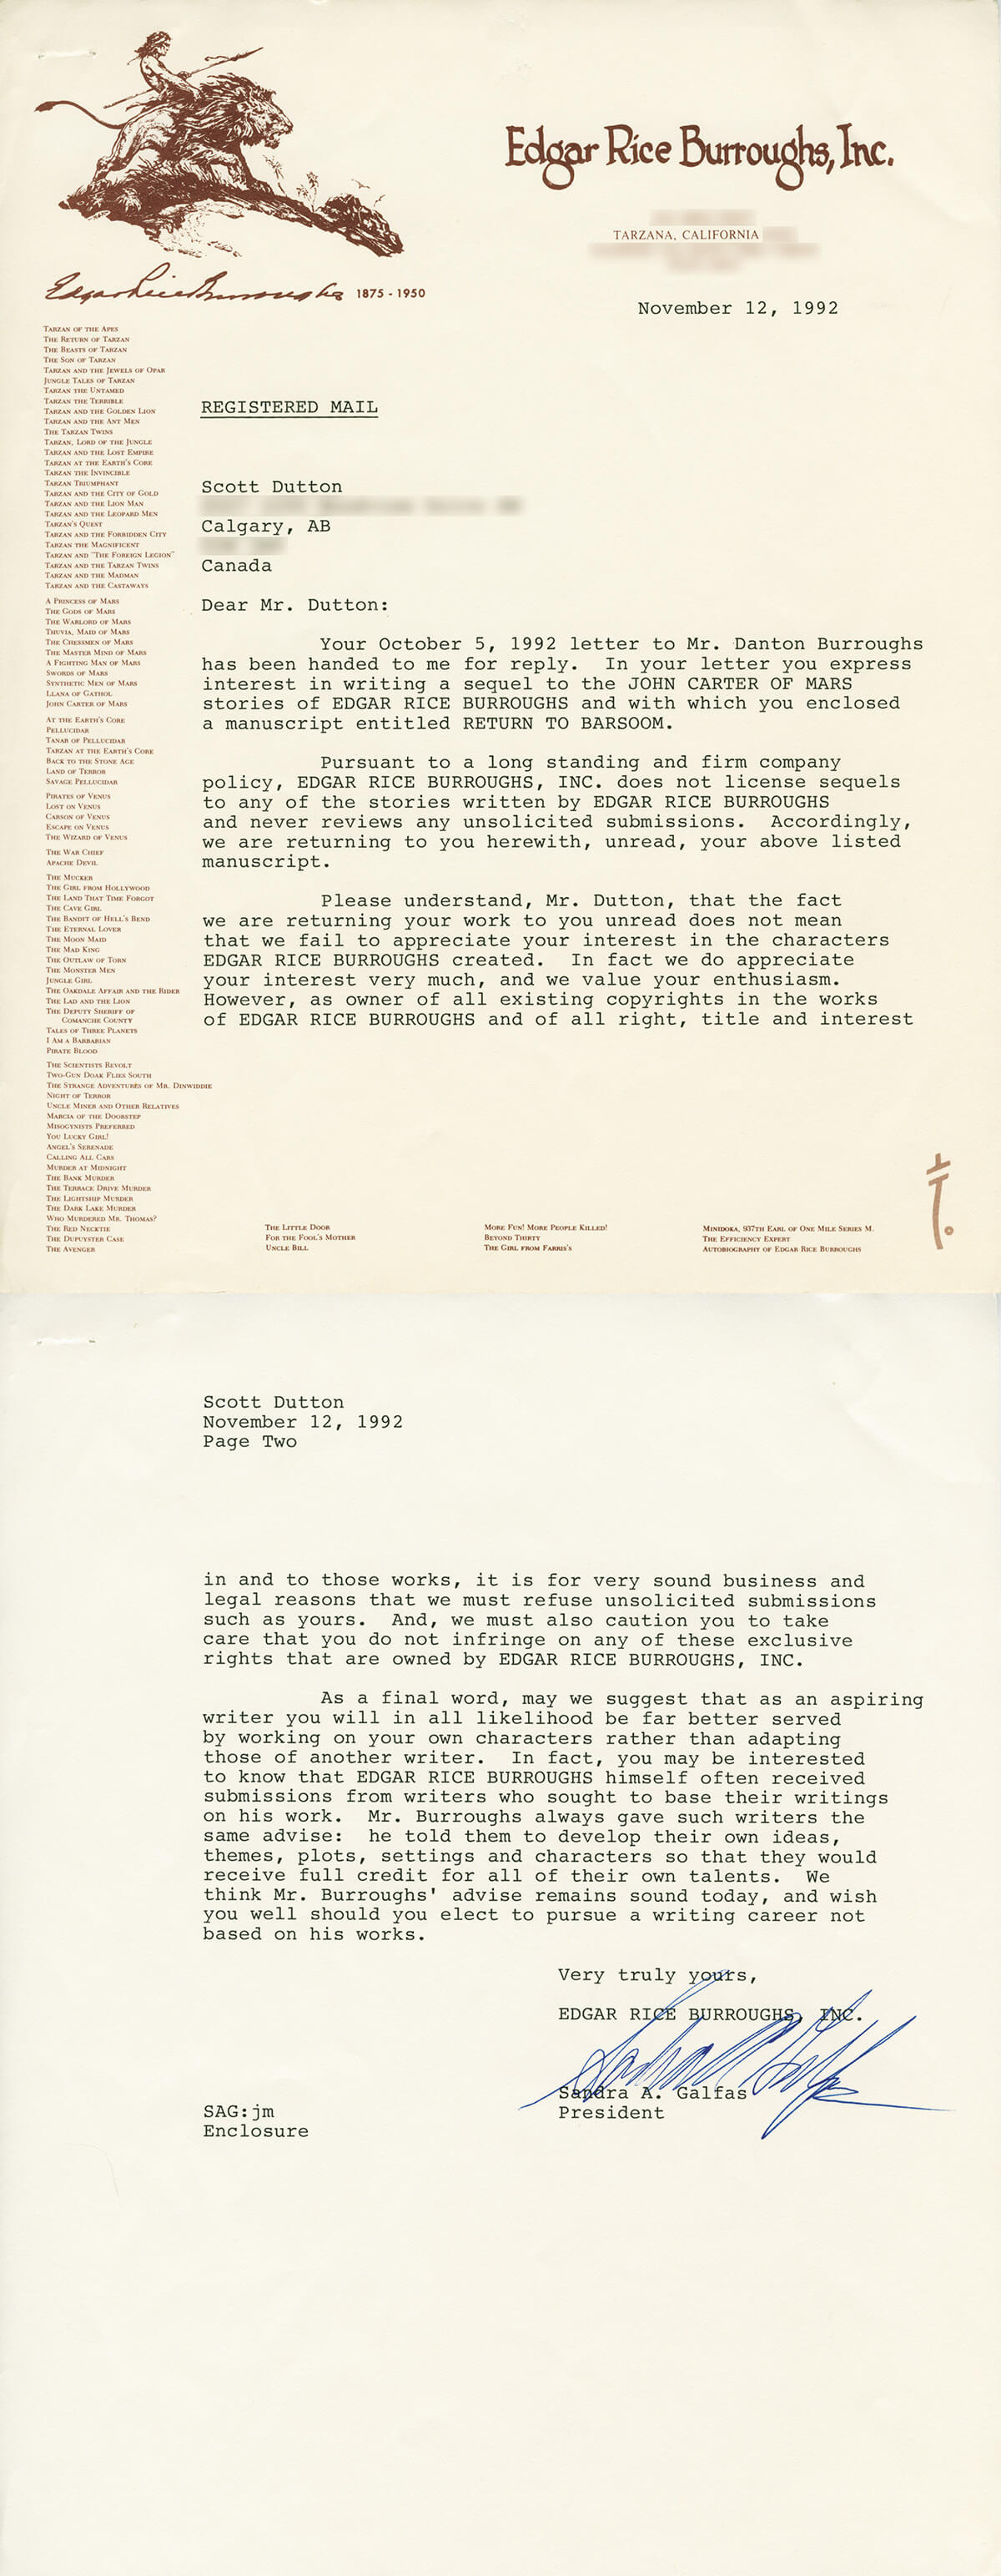 1992 Letter from Edgar Rice Burroughs Inc.